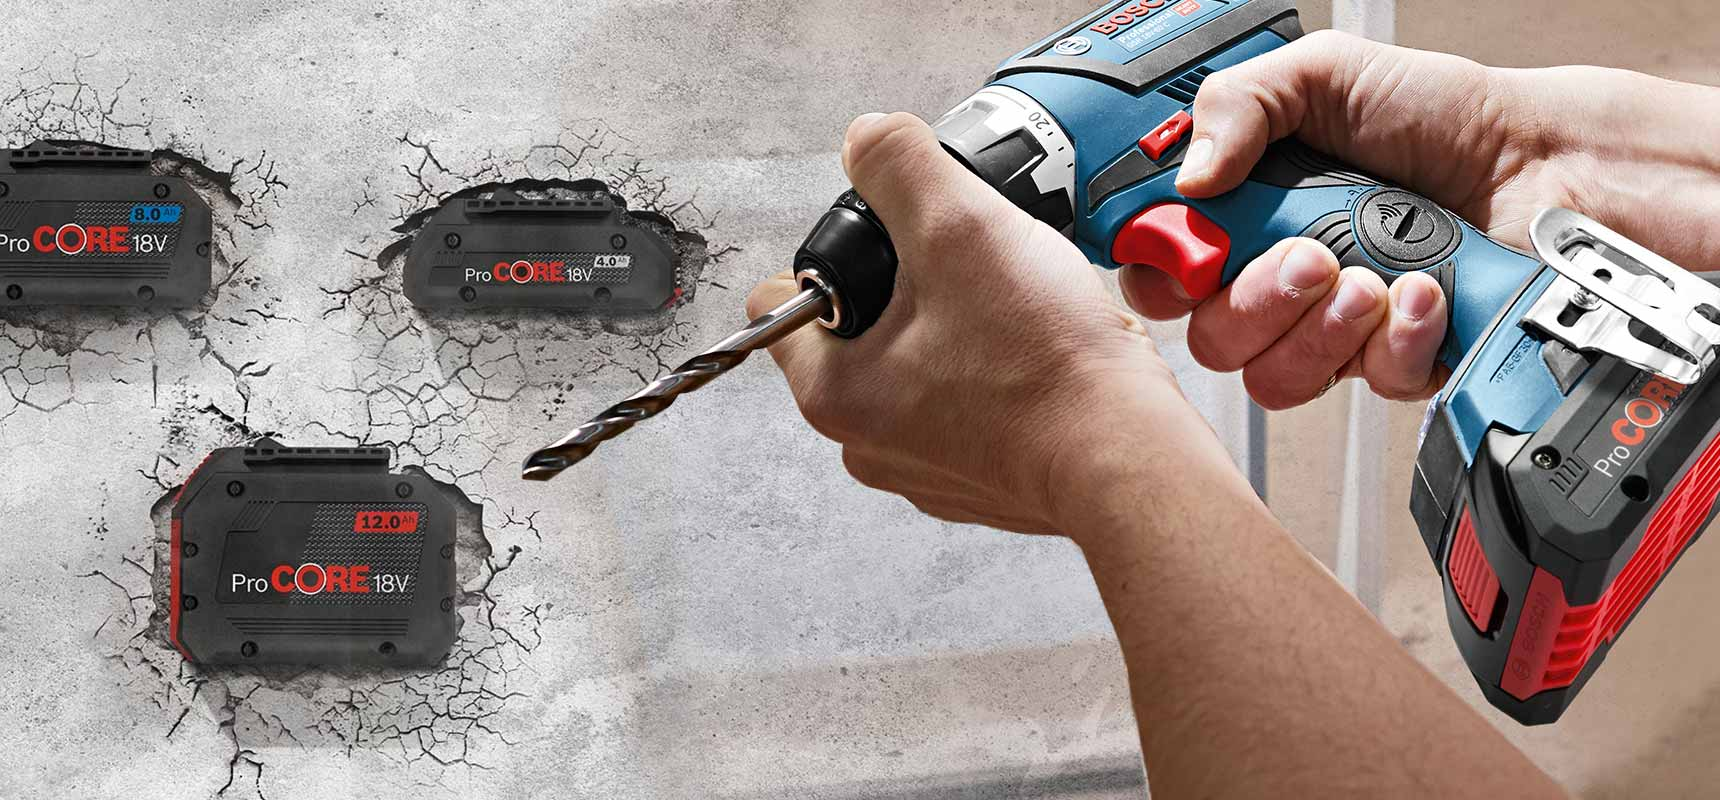 Choosing the right Bosch battery